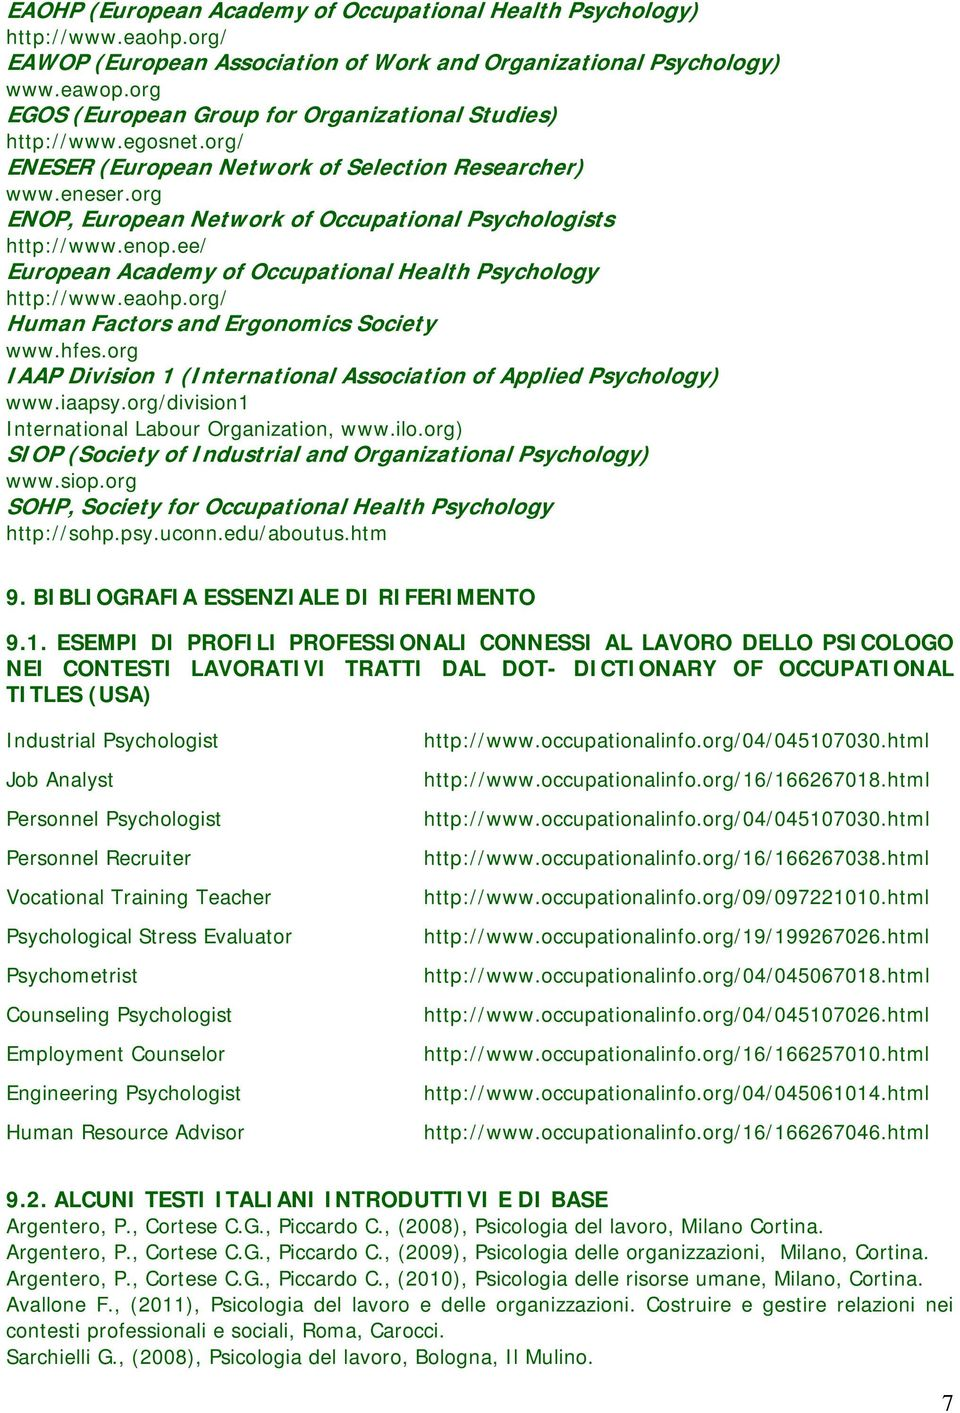 org ENOP, European Network of Occupational Psychologists http://www.enop.ee/ European Academy of Occupational Health Psychology http://www.eaohp.org/ Human Factors and Ergonomics Society www.hfes.